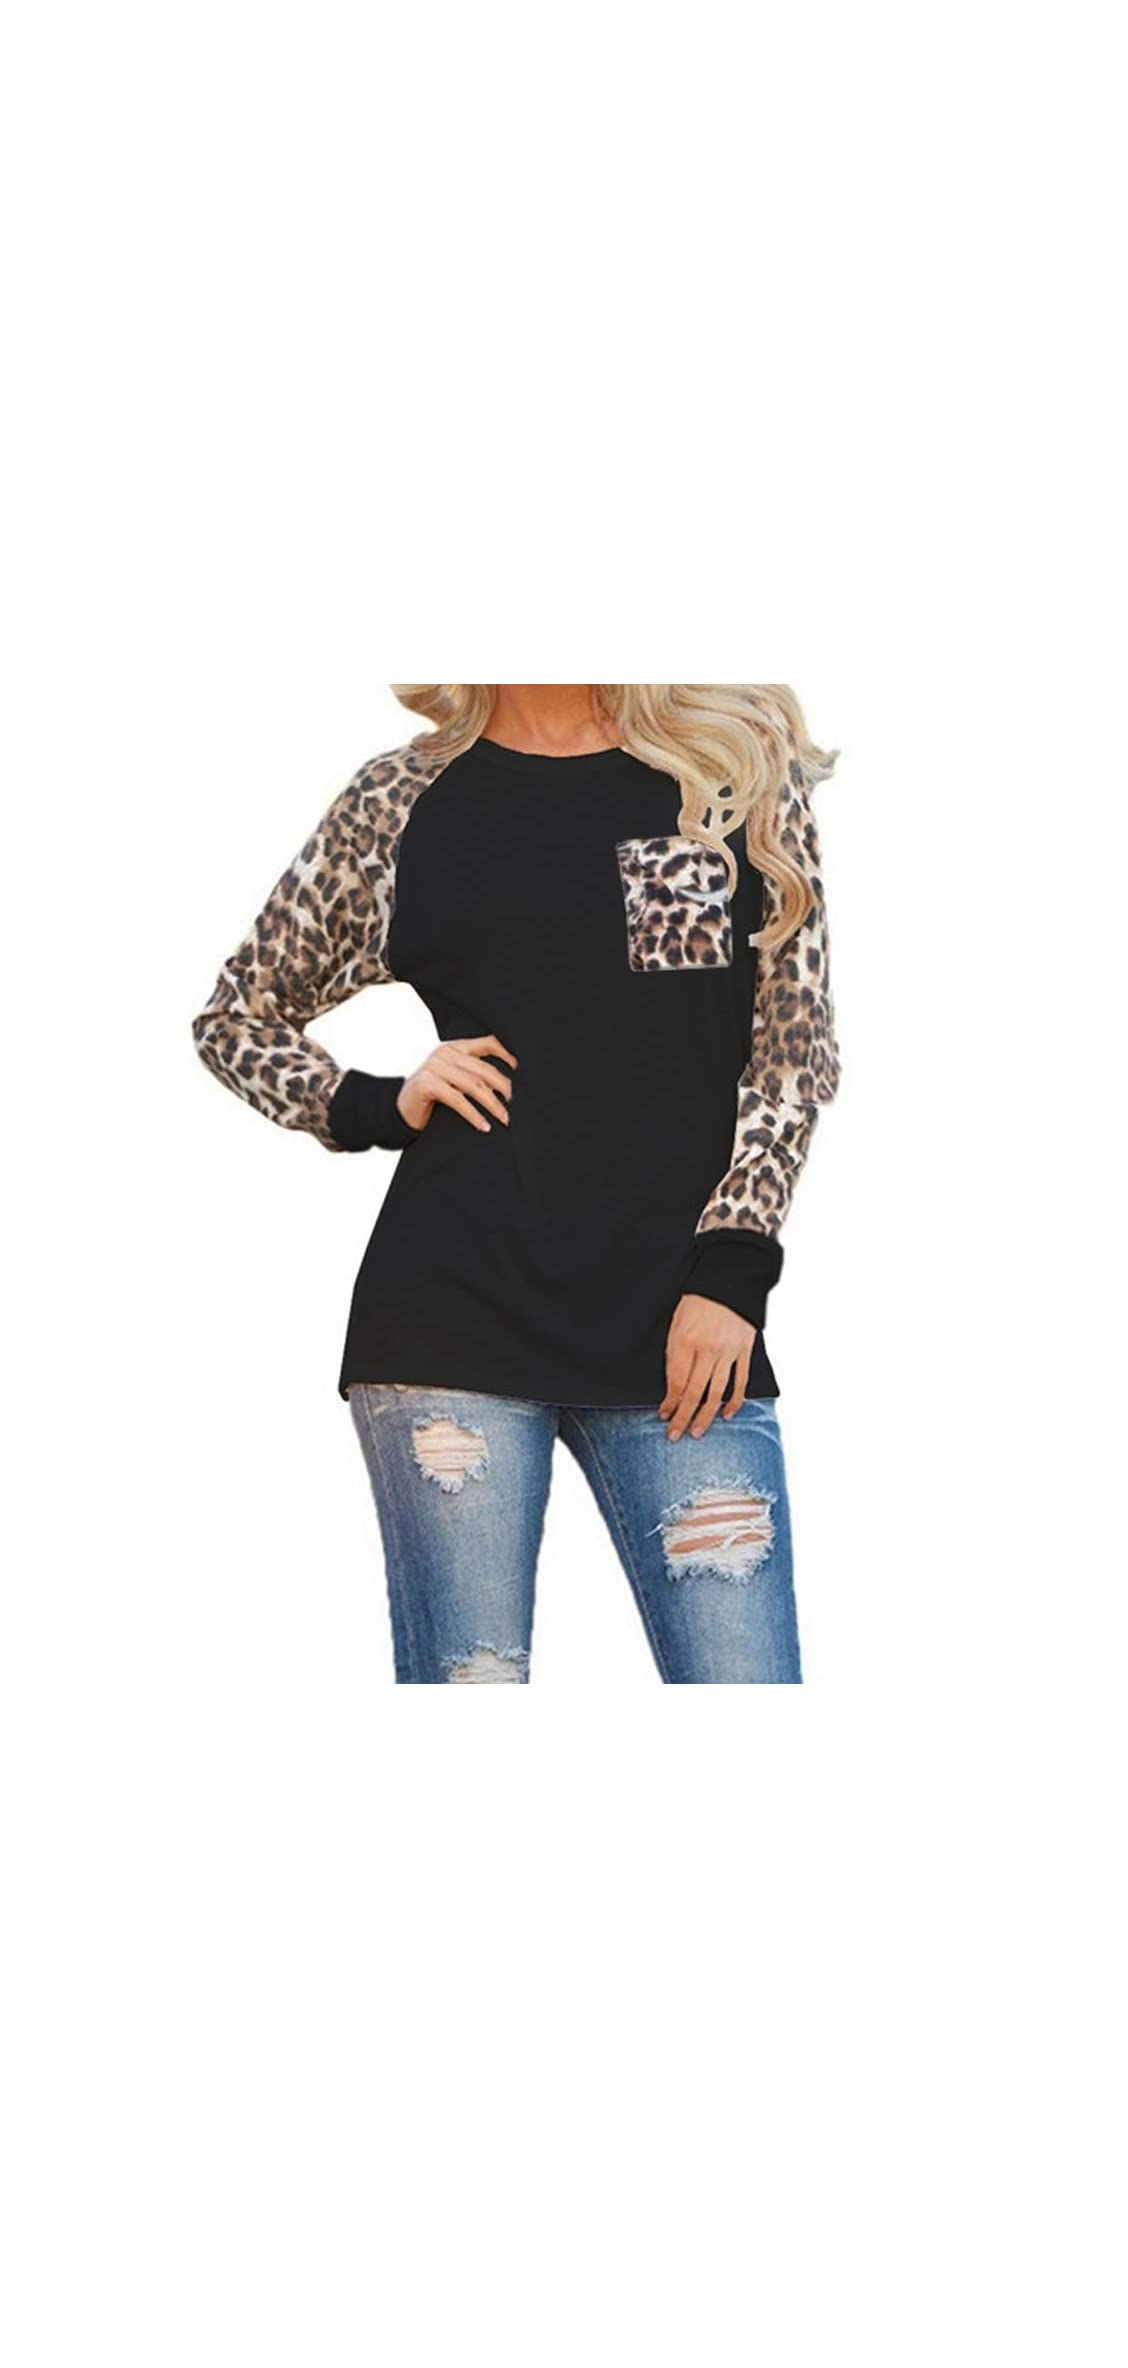 Woman Casual Tops Long Sleeve Leopard Print Patchwork Plus Size